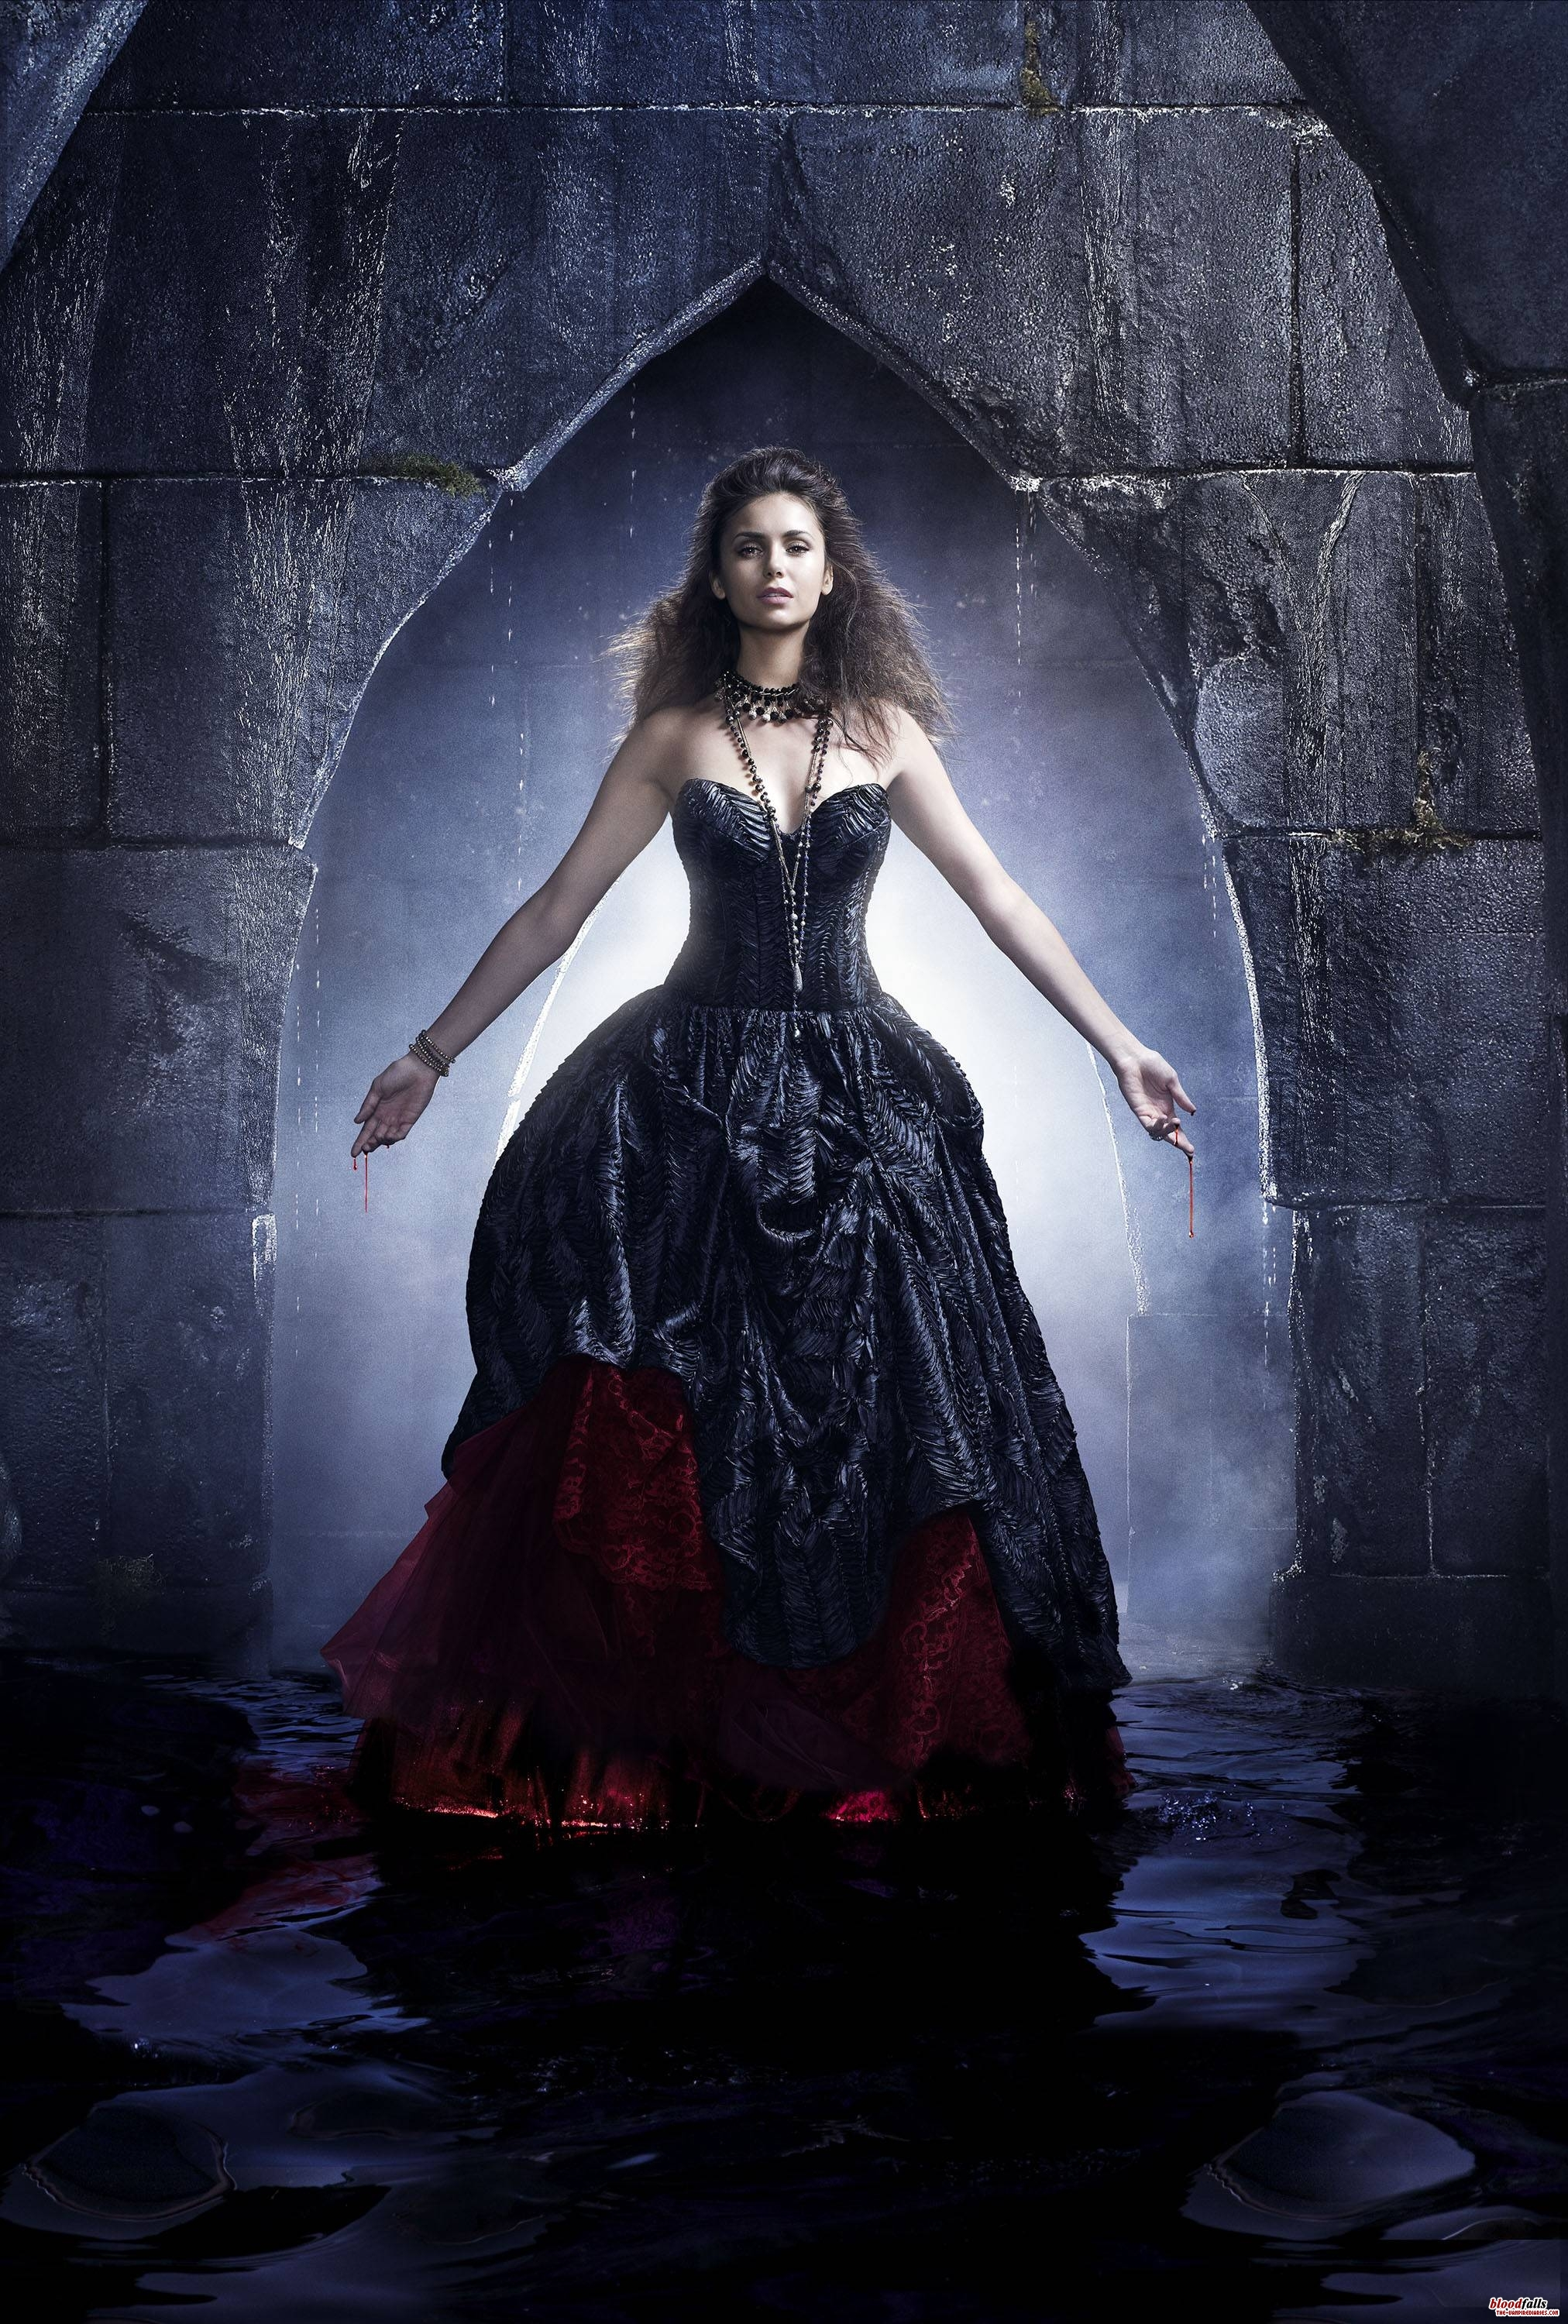 The Vampire Diaries (season 1) - Wikipedia